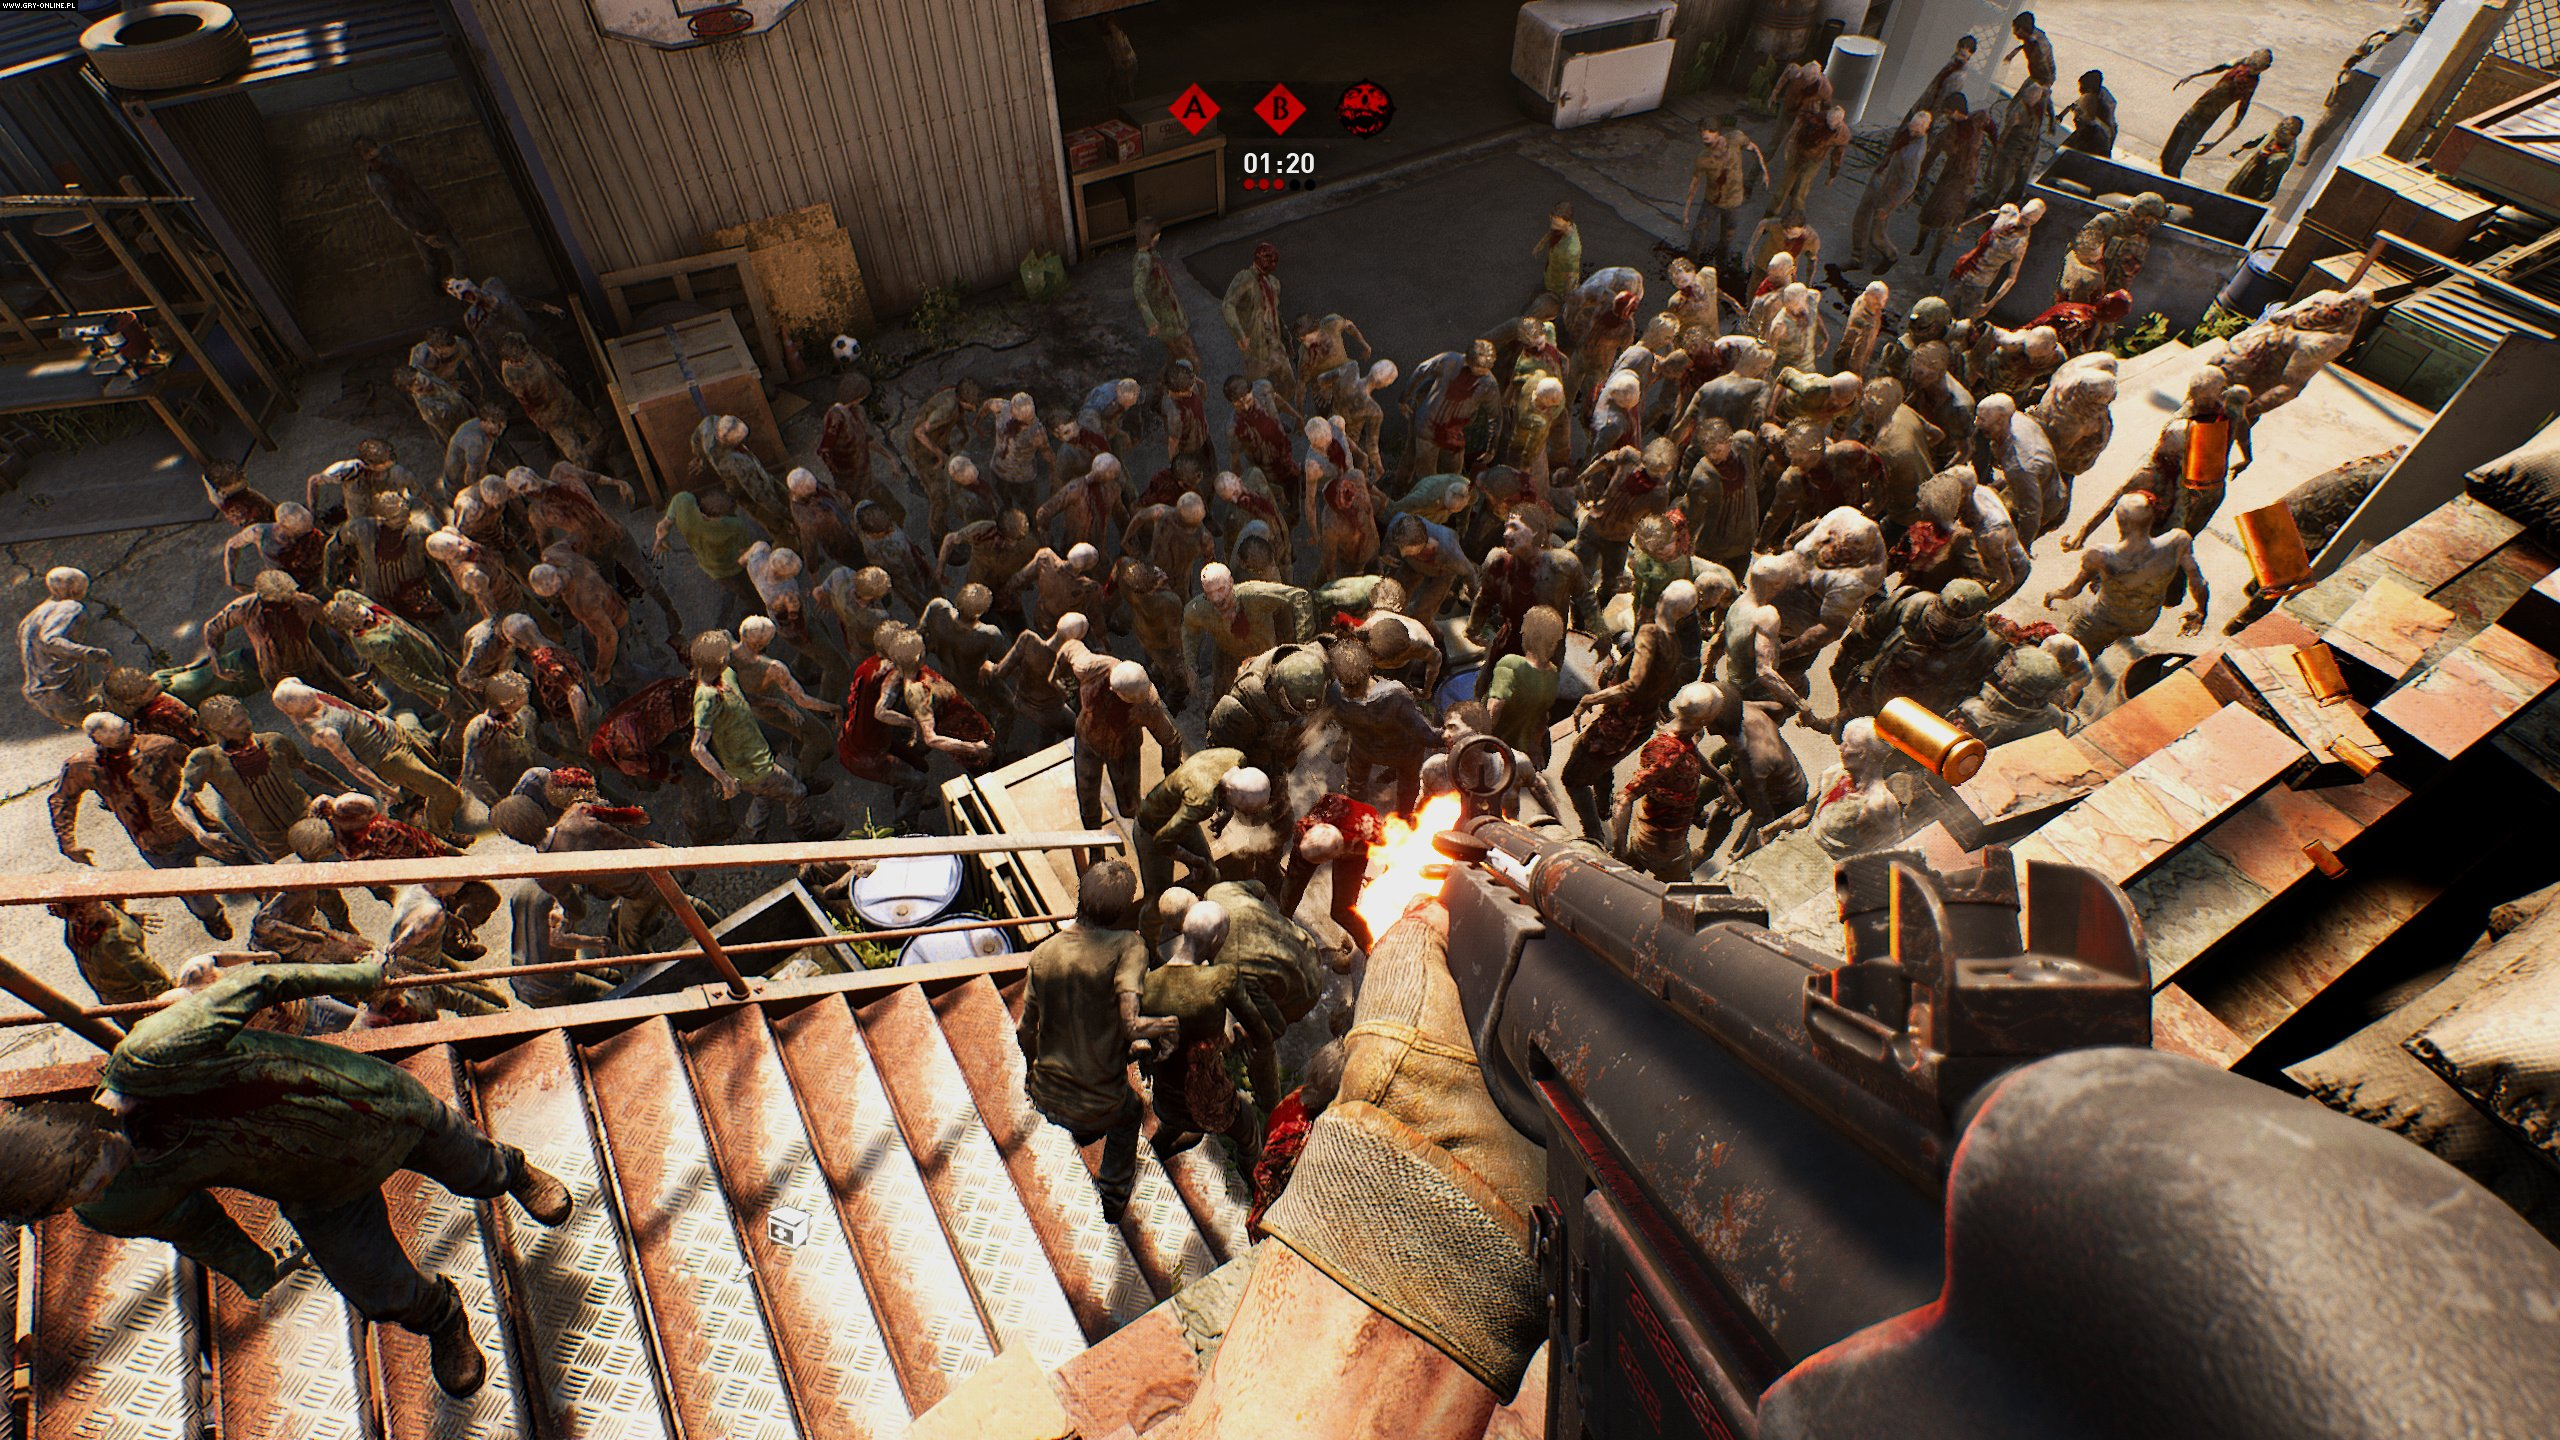 OVERKILL's The Walking Dead PC, PS4, XONE Games Image 22/47, OVERKILL Software, 505 Games